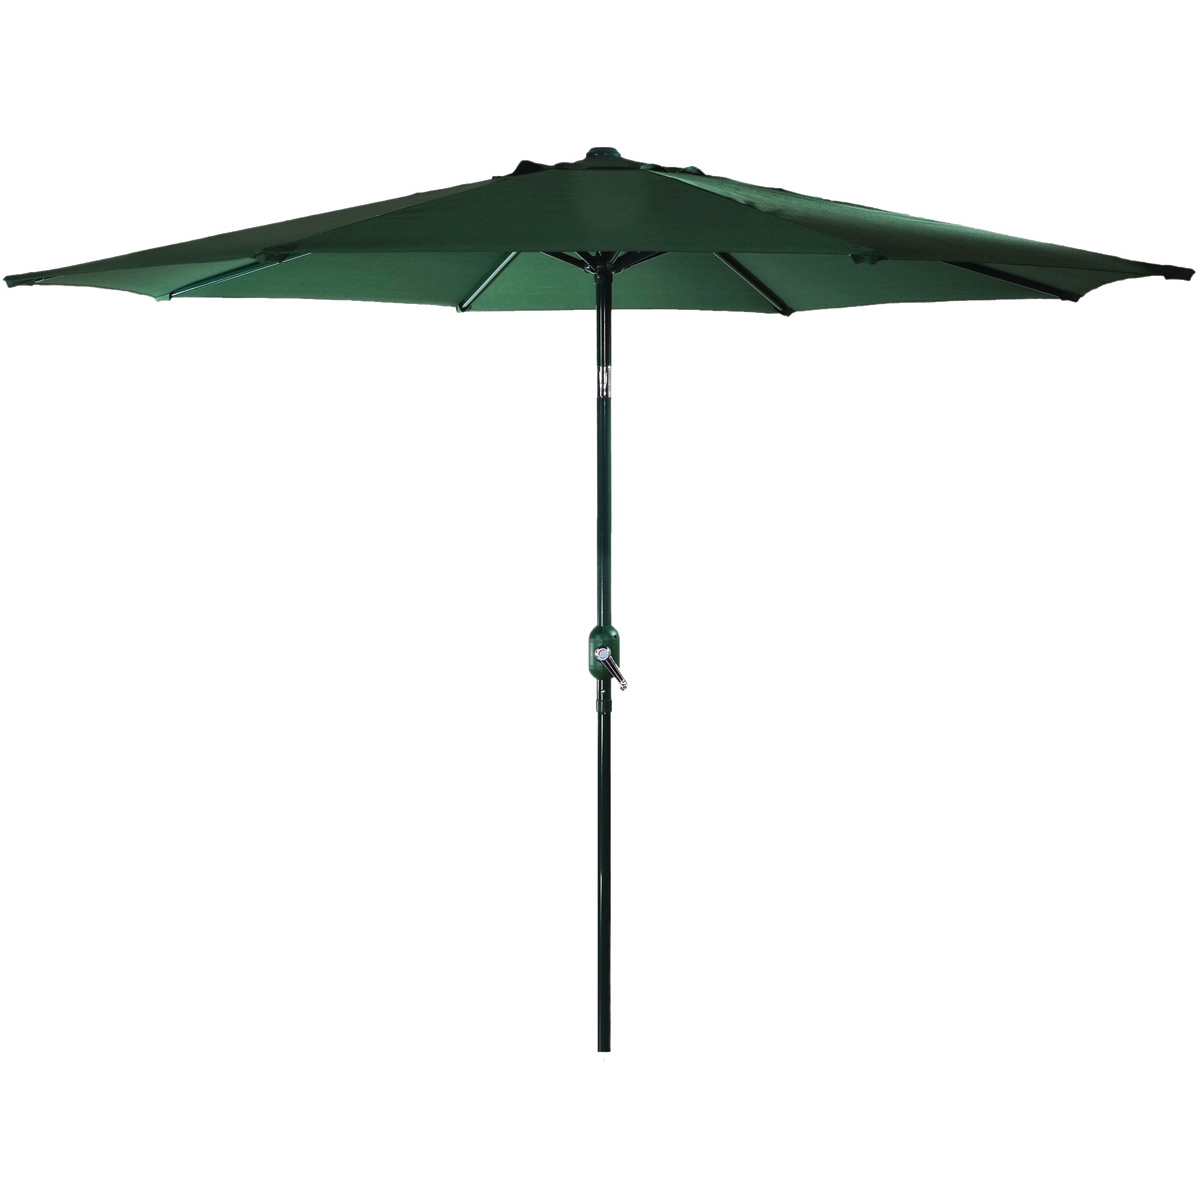 Picture of Seasonal Trends 60035 Crank Umbrella, 92.9 in H, 107.9 in W Canopy, 107.9 in L Canopy, Round Canopy, Steel Frame